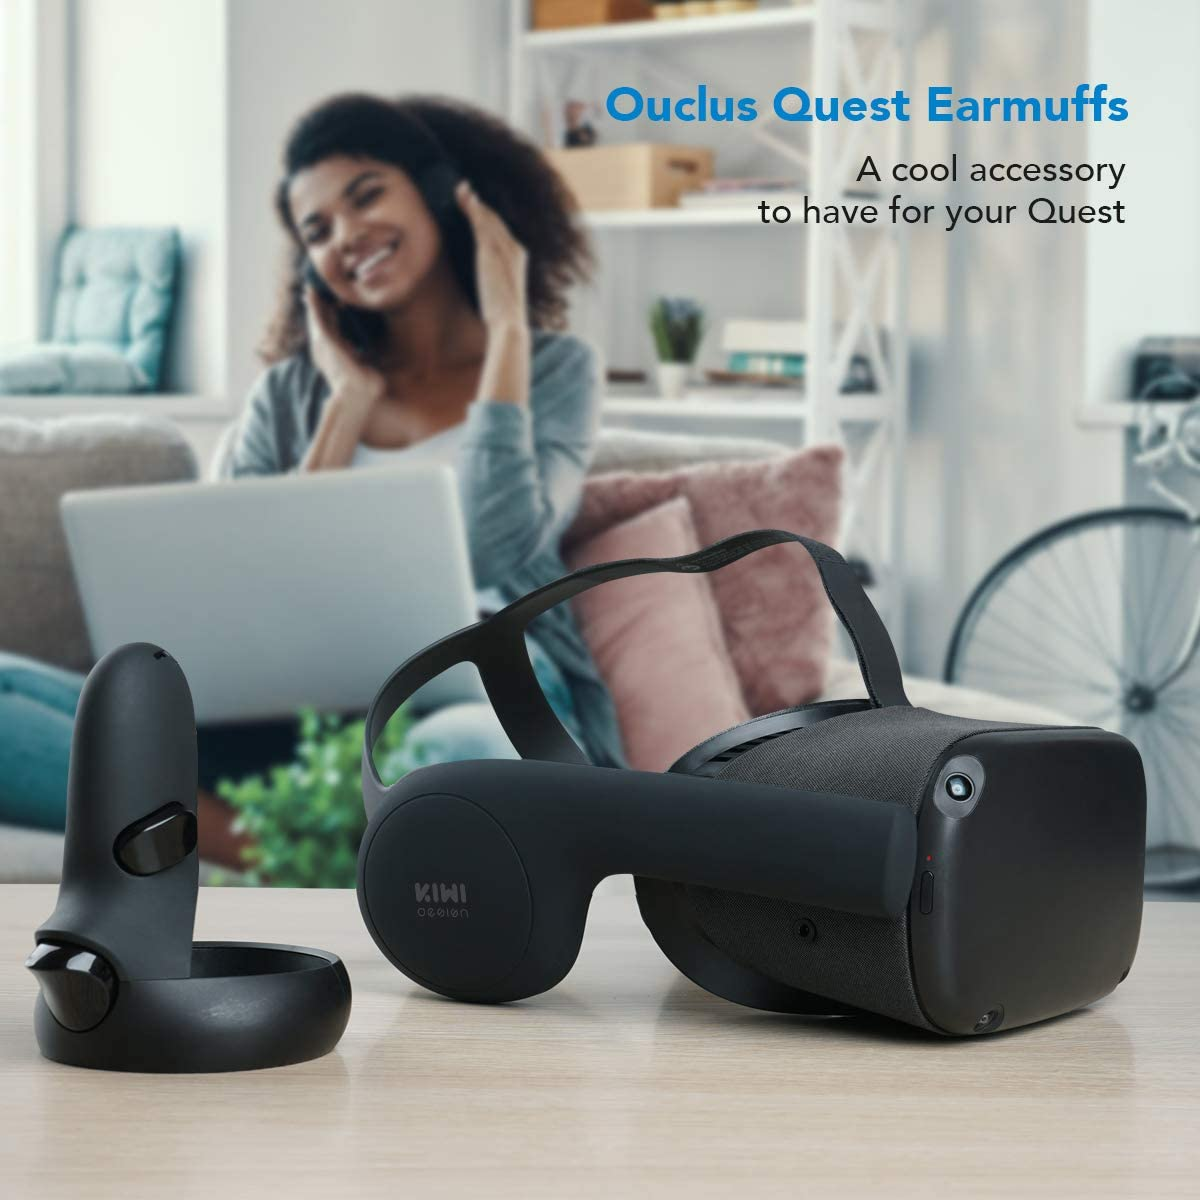 KIWI design Silicone Ear Muffs for Oculus Quest VR Headset Black, 1 Pair A Enhancing Sound Solution for Oculus Quest Accessories